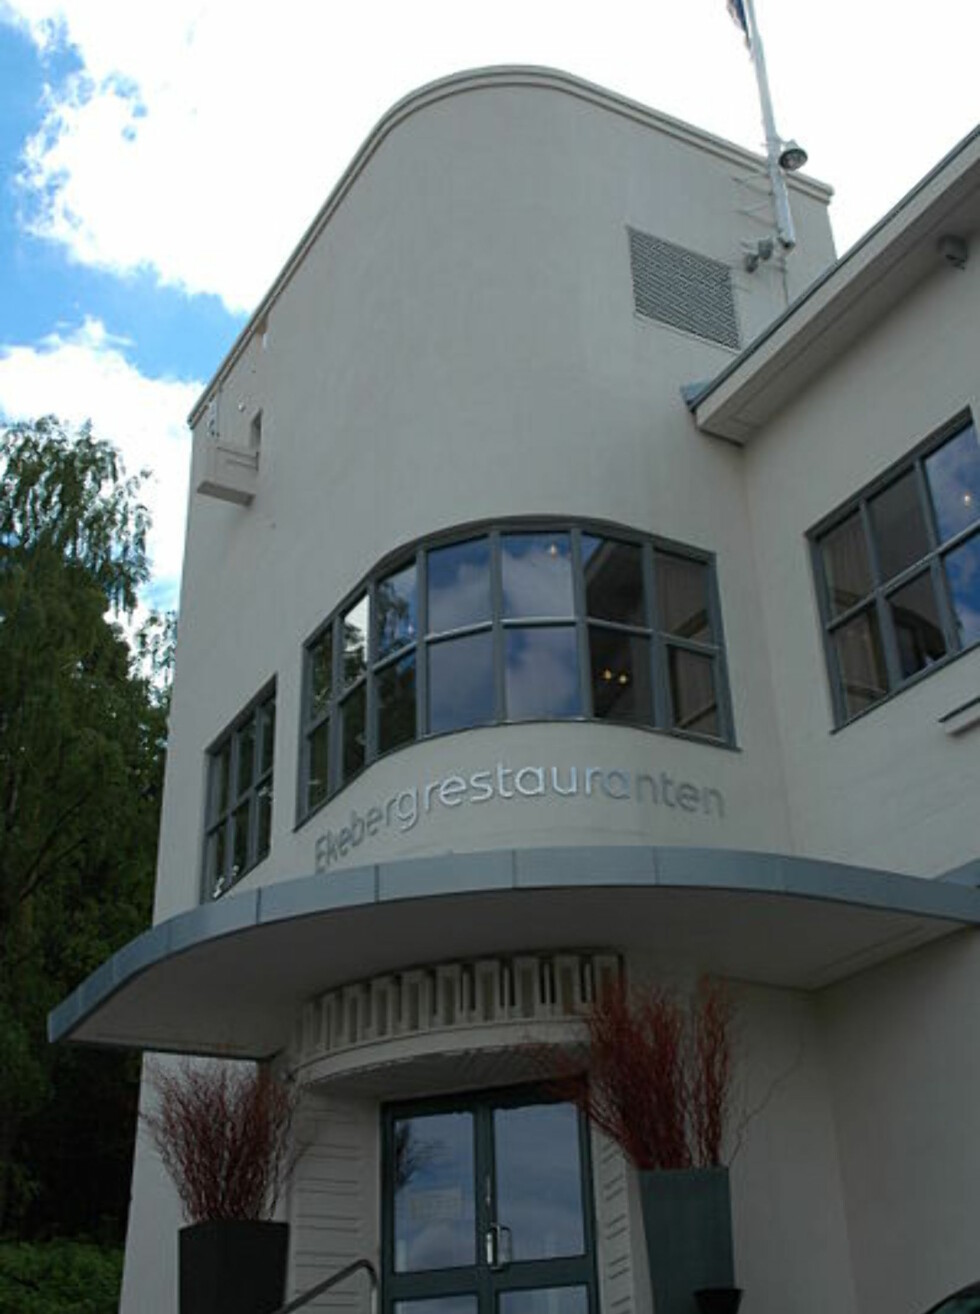 Ekebergrestauranten. Foto: Wikipedia